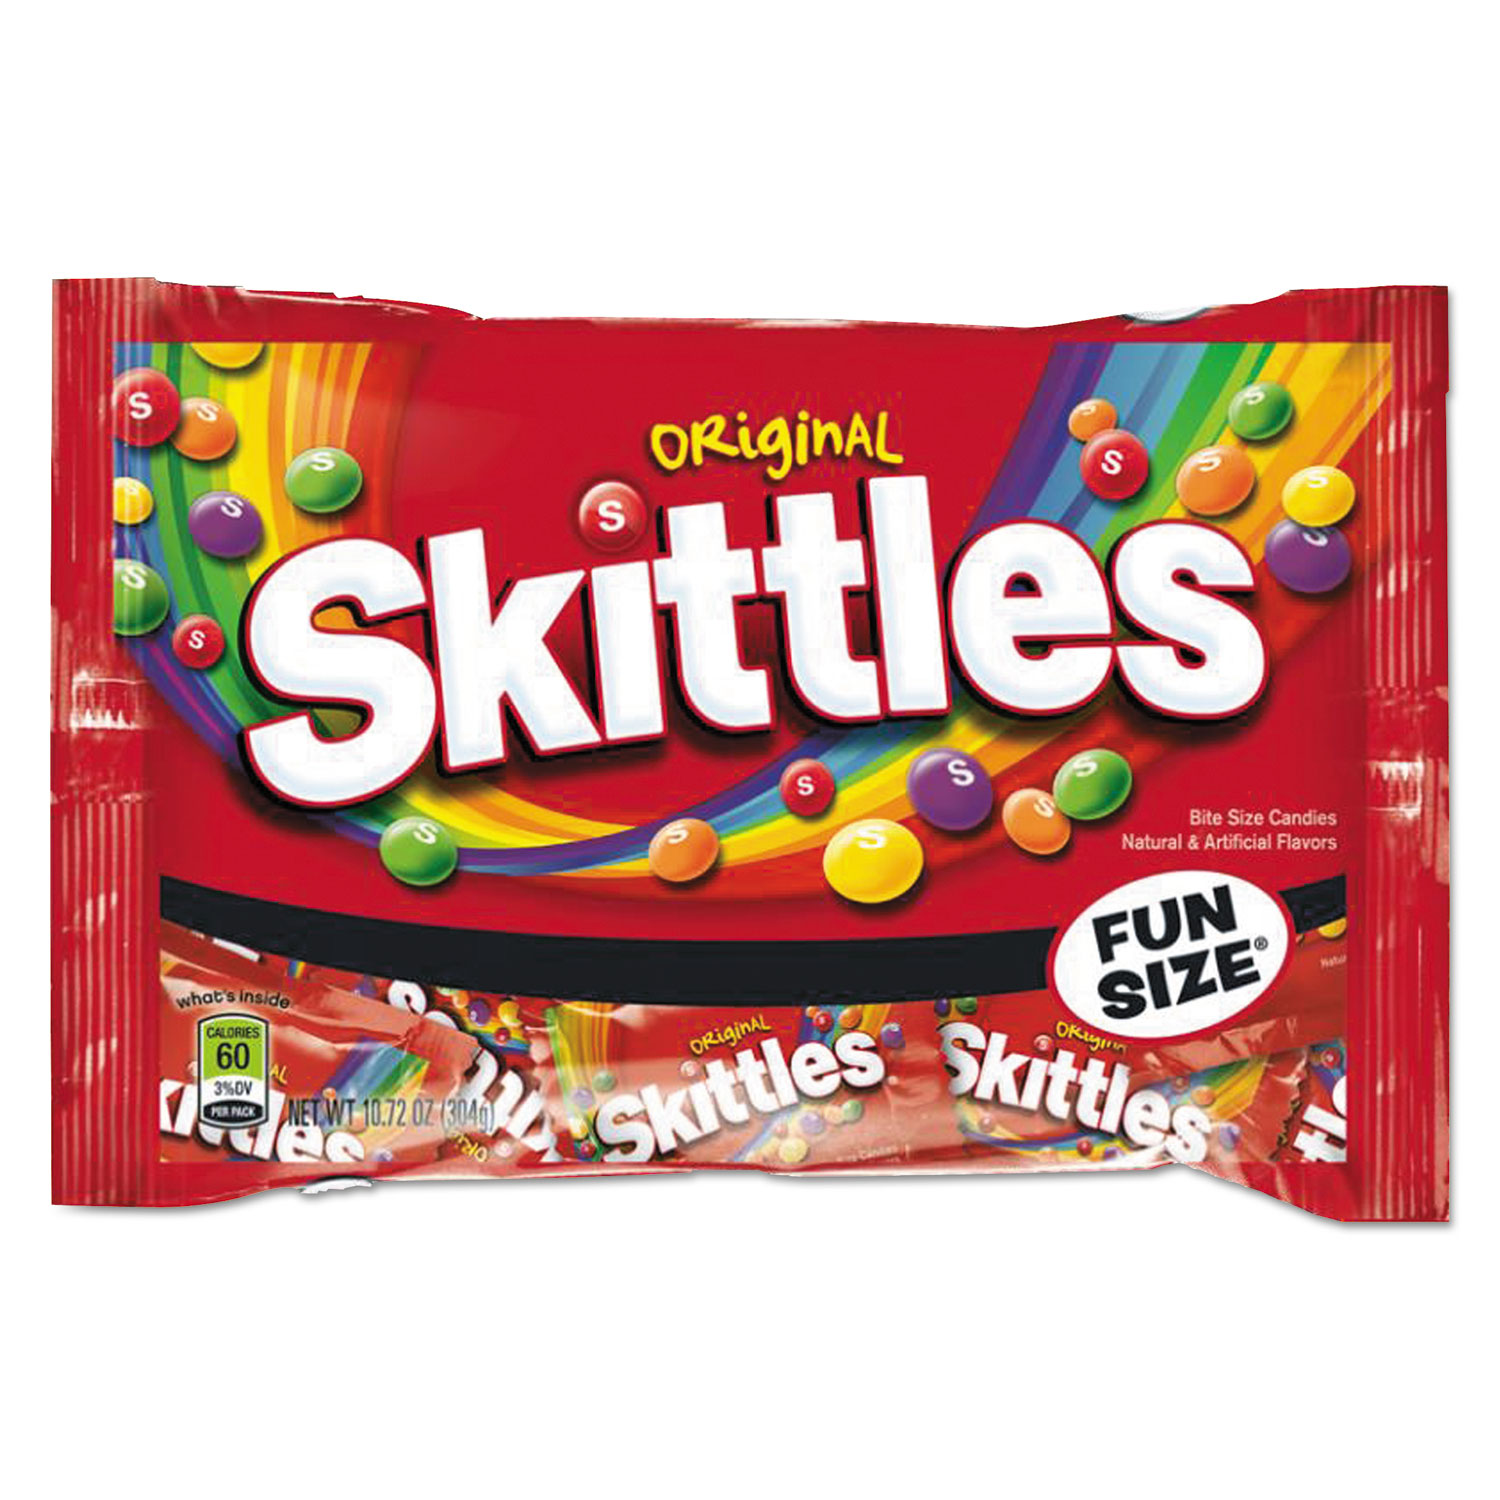 Chewy Candy, Original Skittle Flavor, 10.72 oz Bag